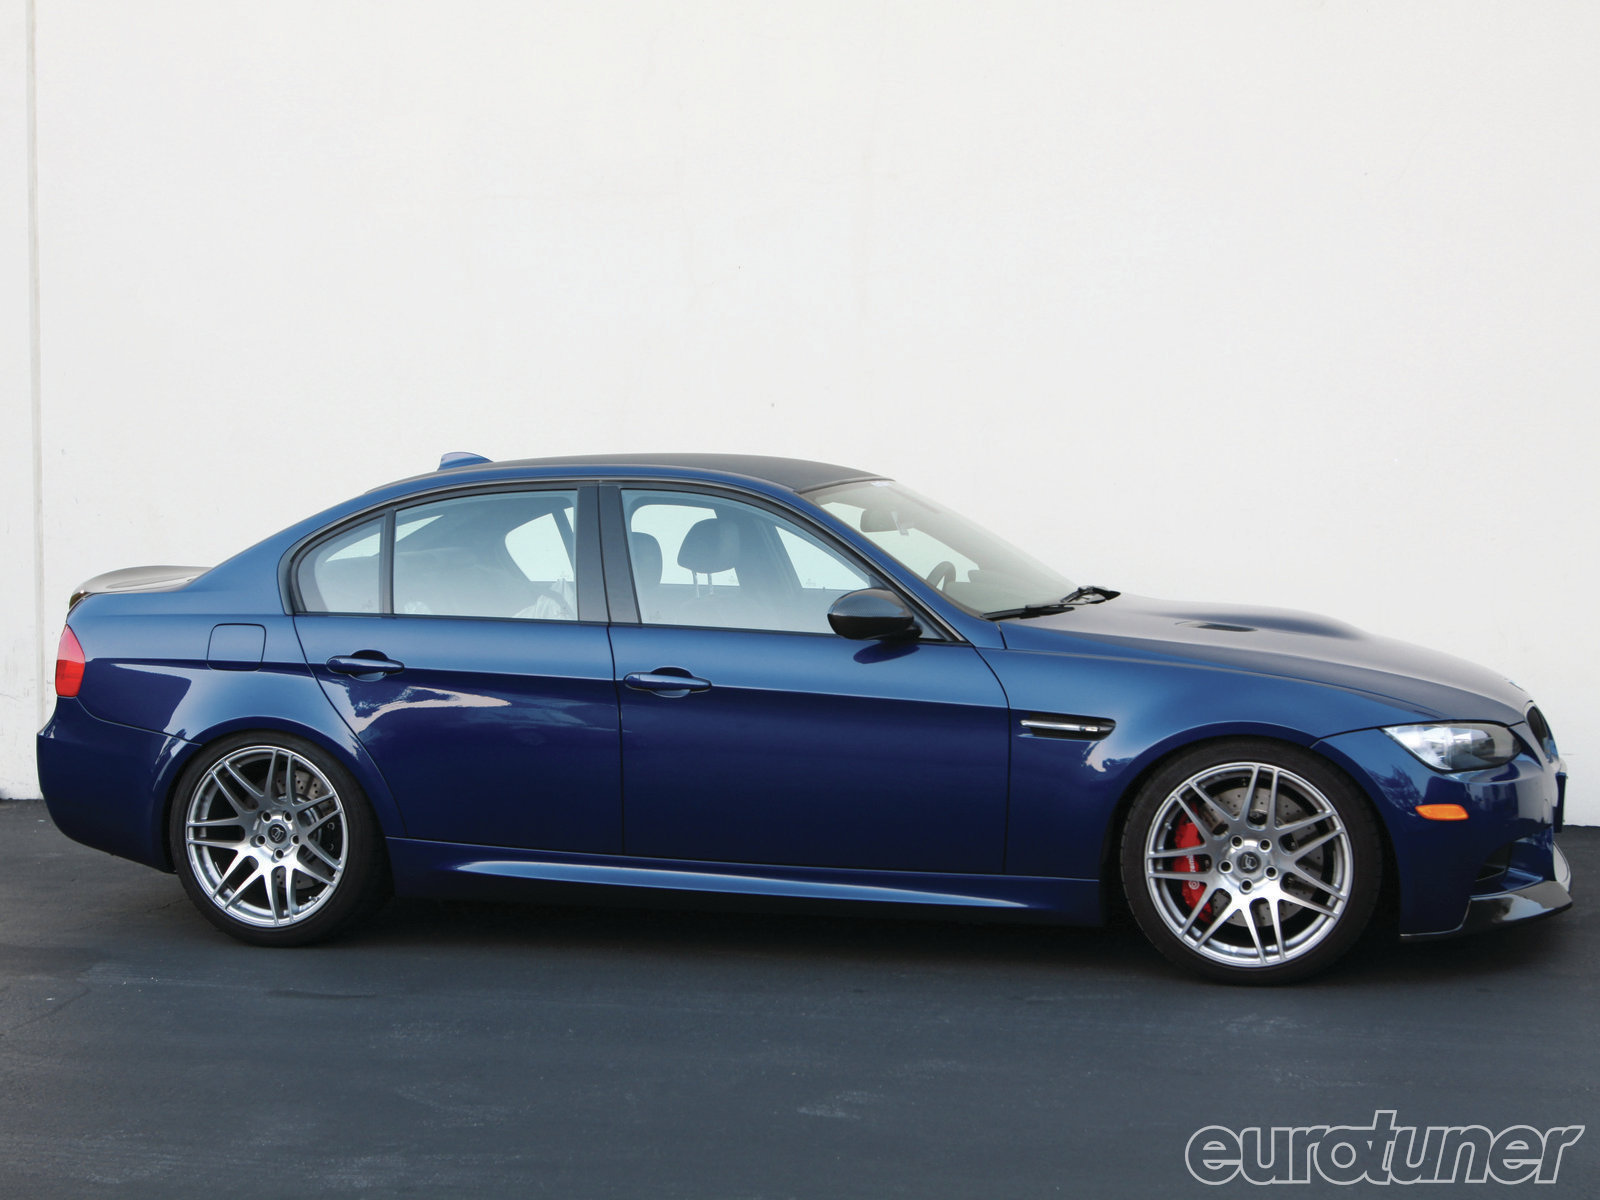 medium resolution of eurp 1109 01 2010 bmw m3 cover